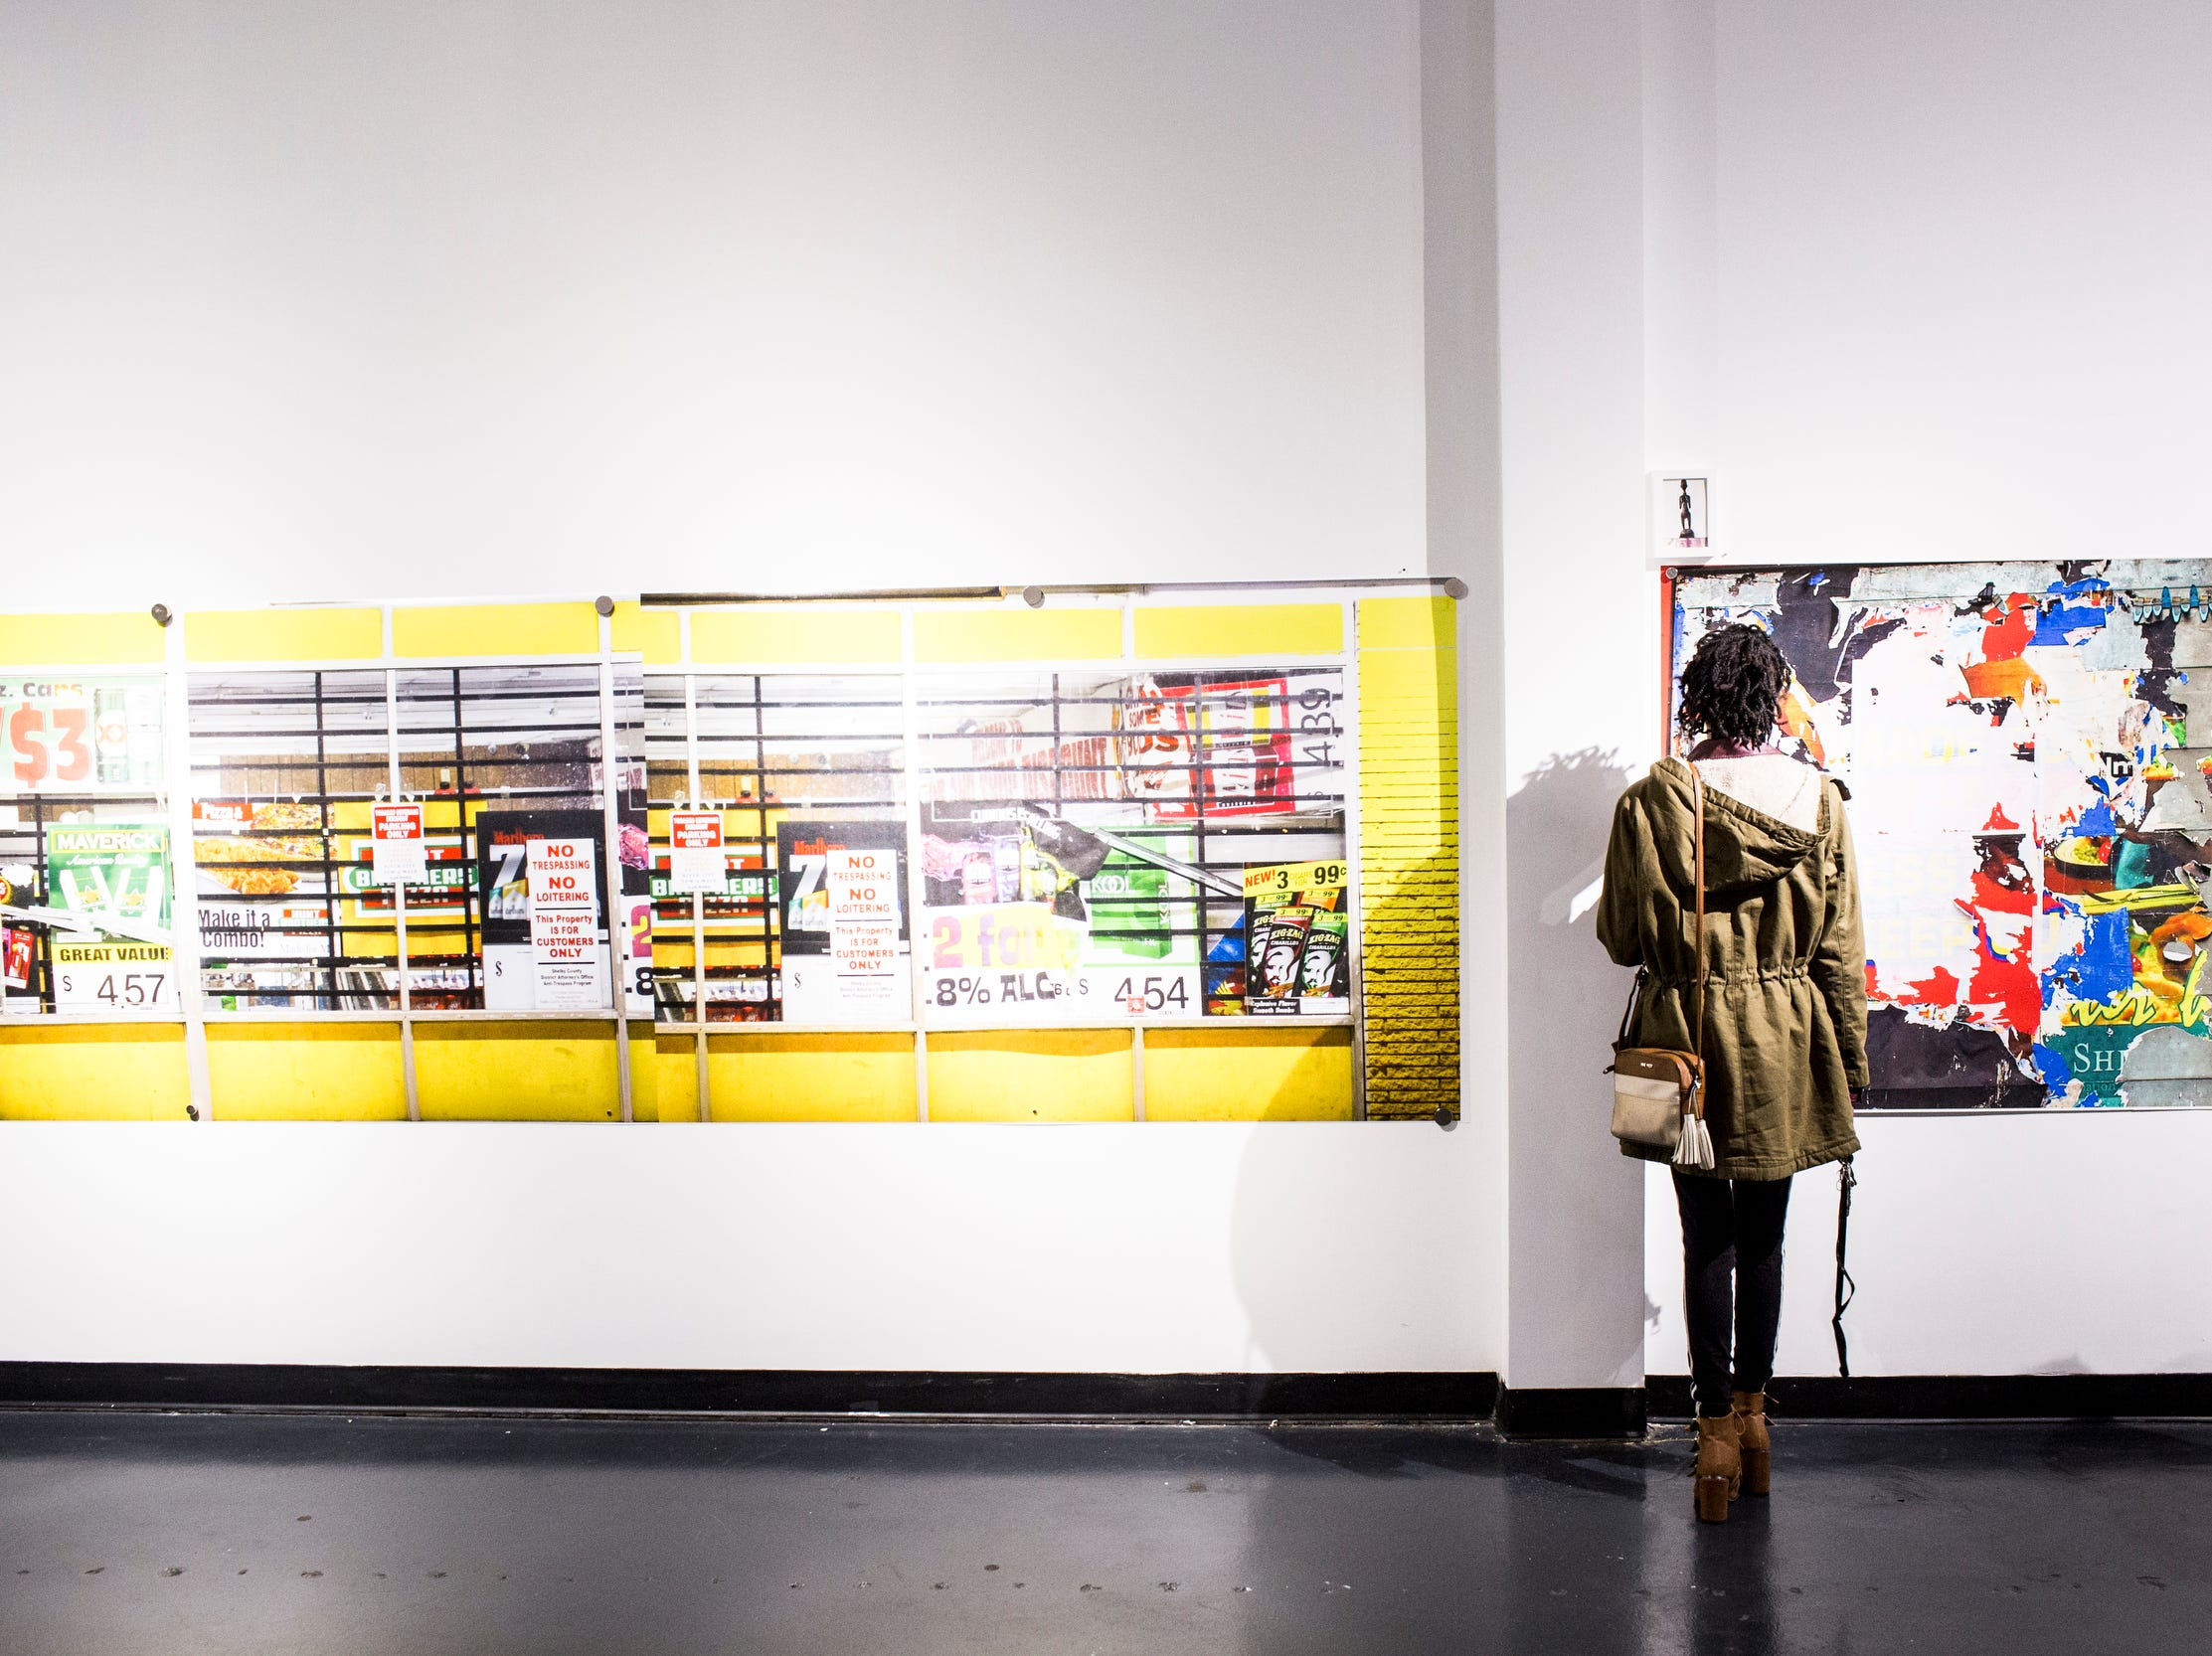 February 08, 2019 - Alandria Ivory looks at work during the PHTGRPHS show featuring work by Lester Merriweather and Lawrence Matthews at The CMPLX. The CMPLX, a gallery, office and work space for The Collective, is located at 2234 Lamar Ave. in the Lamar Airways Shopping Center in Orange Mound.